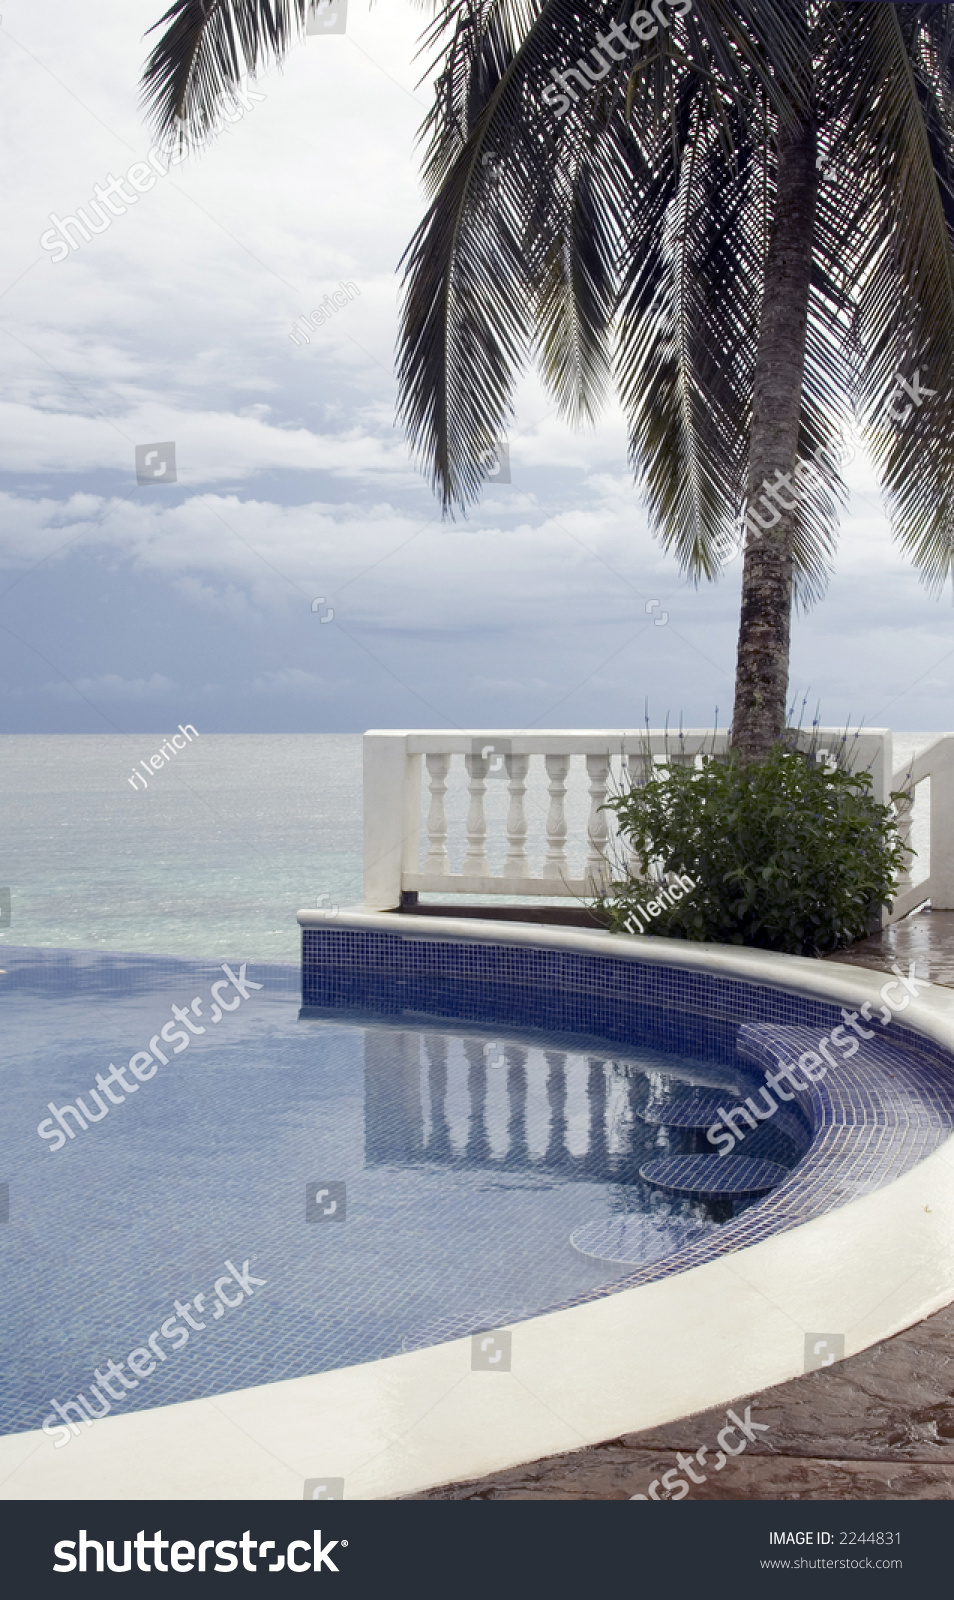 Swimming Pool Built In Bar Seats Table Caribbean Sea Nicaragua Resort Stock Photo 2244831